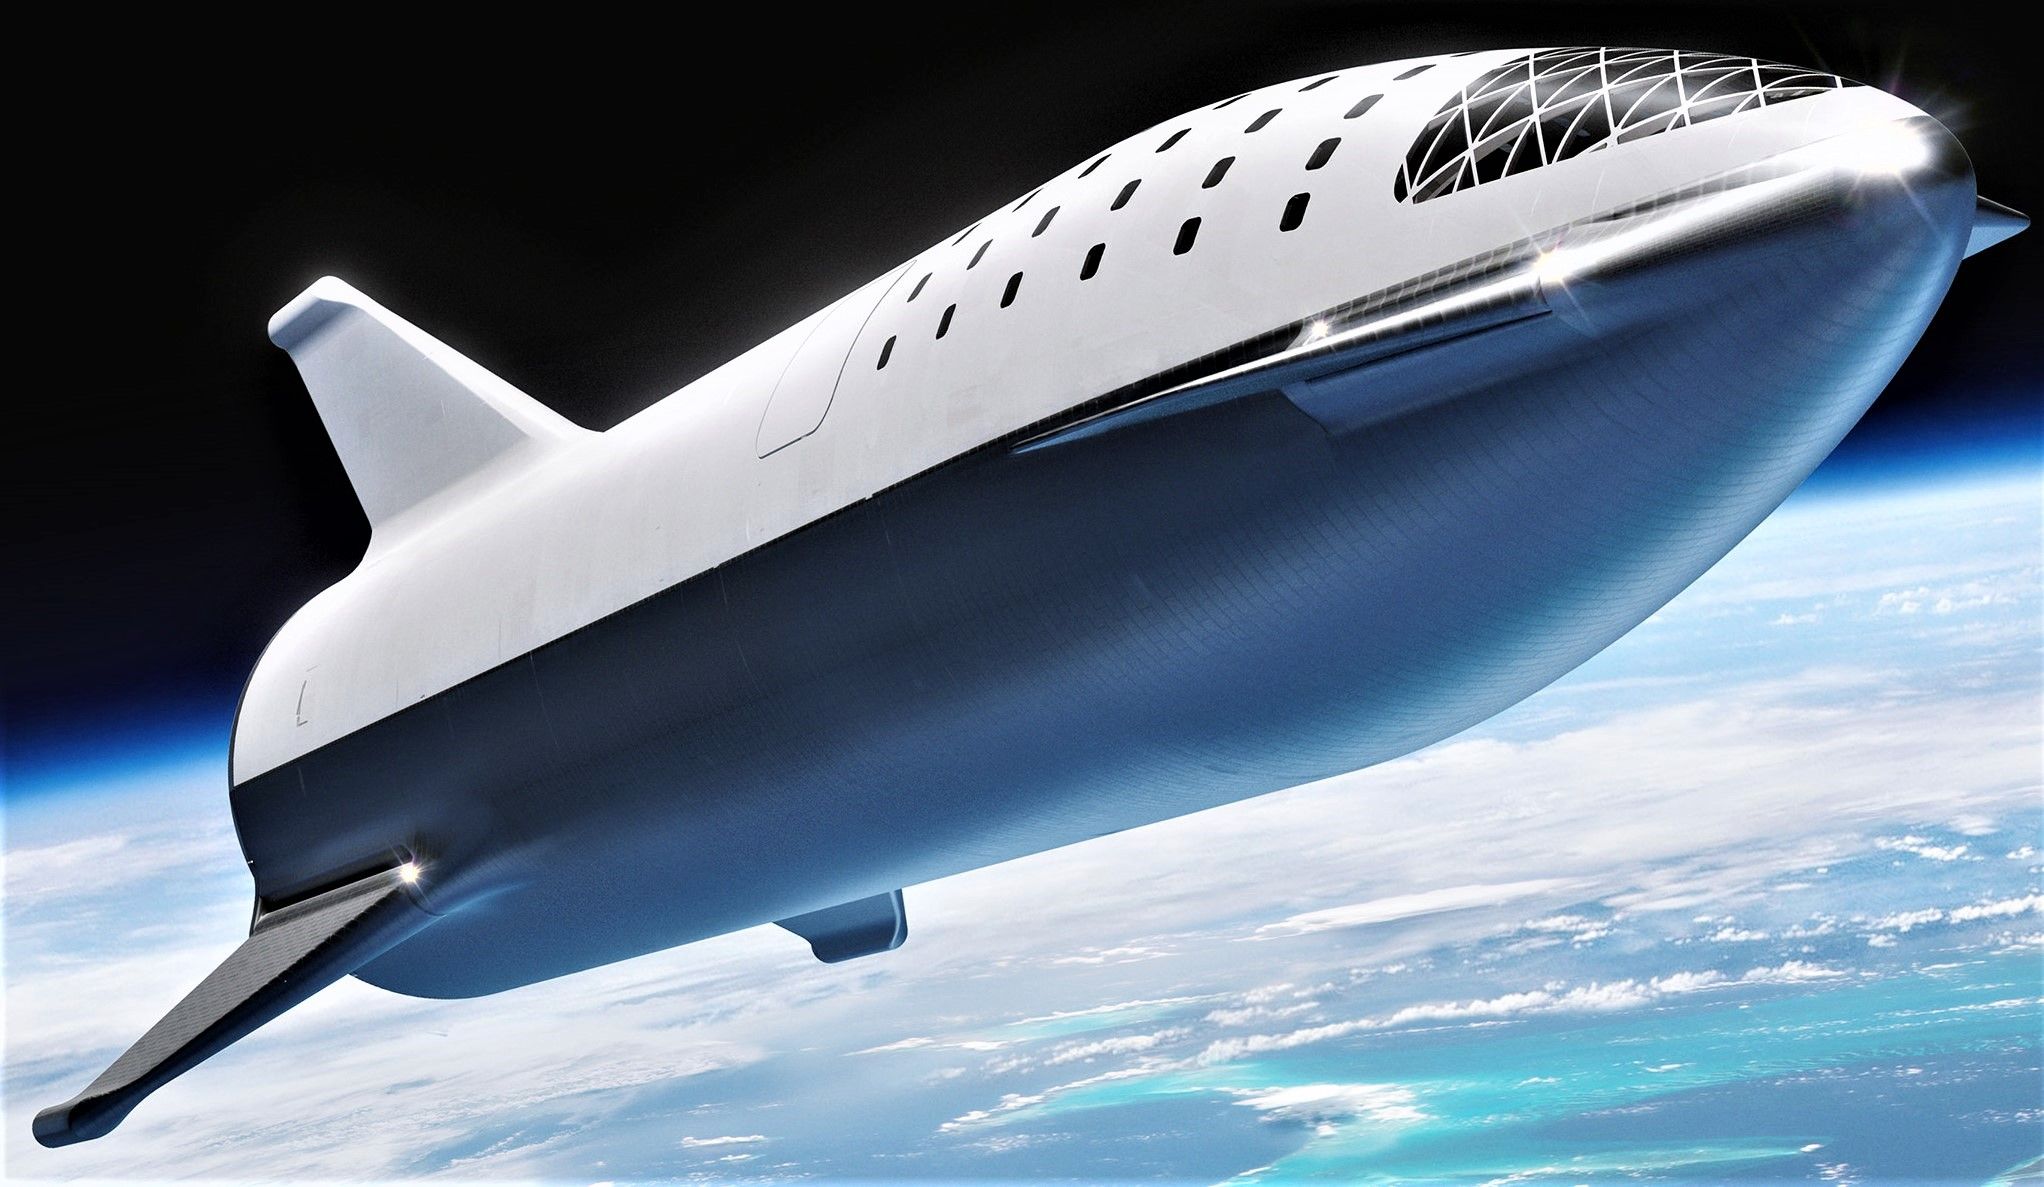 BFR 2018 spaceship overview (SpaceX) 1